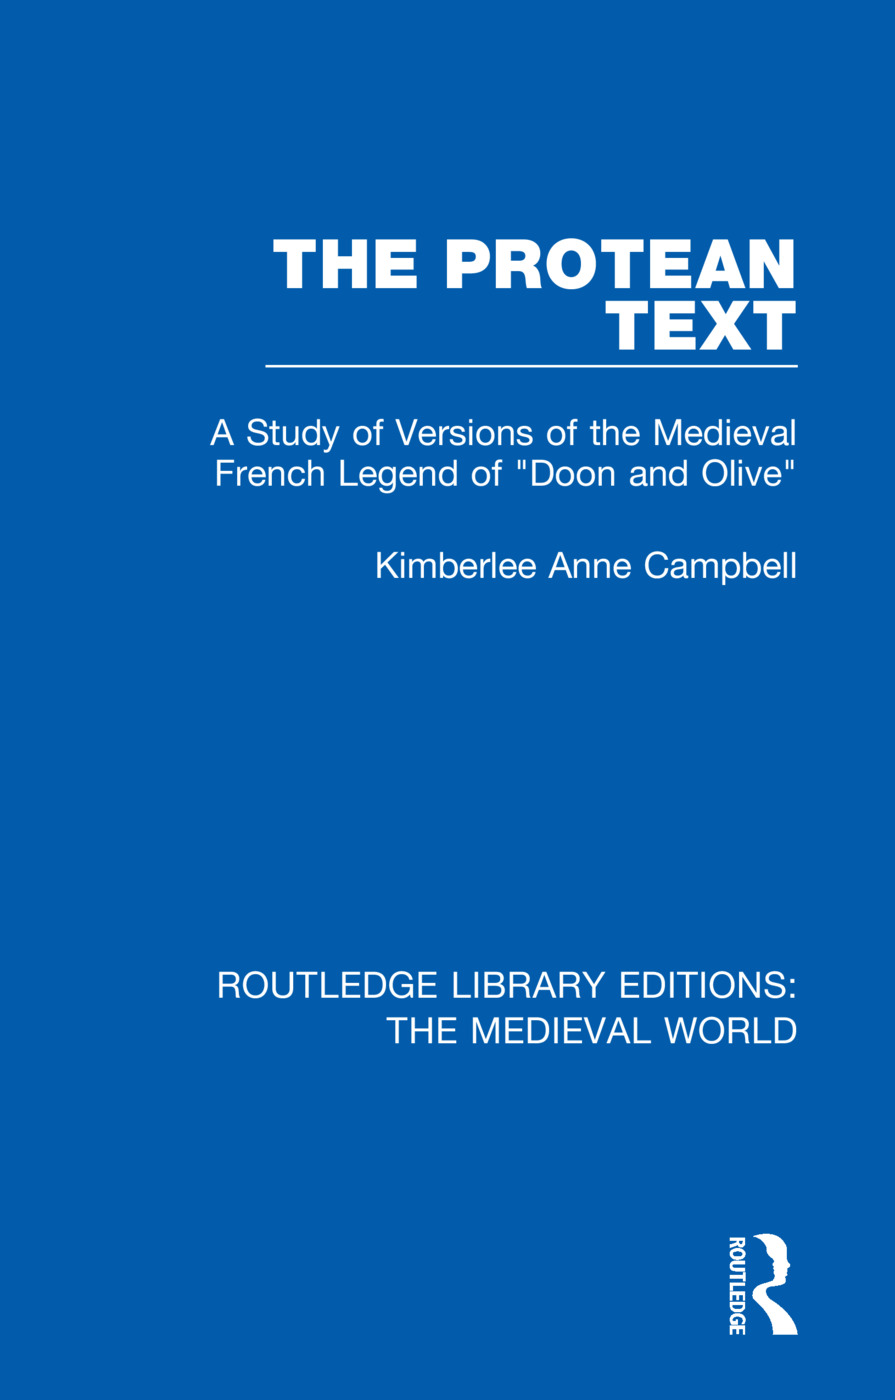 The Protean Text: A Study of Versions of the Medieval French Legend of